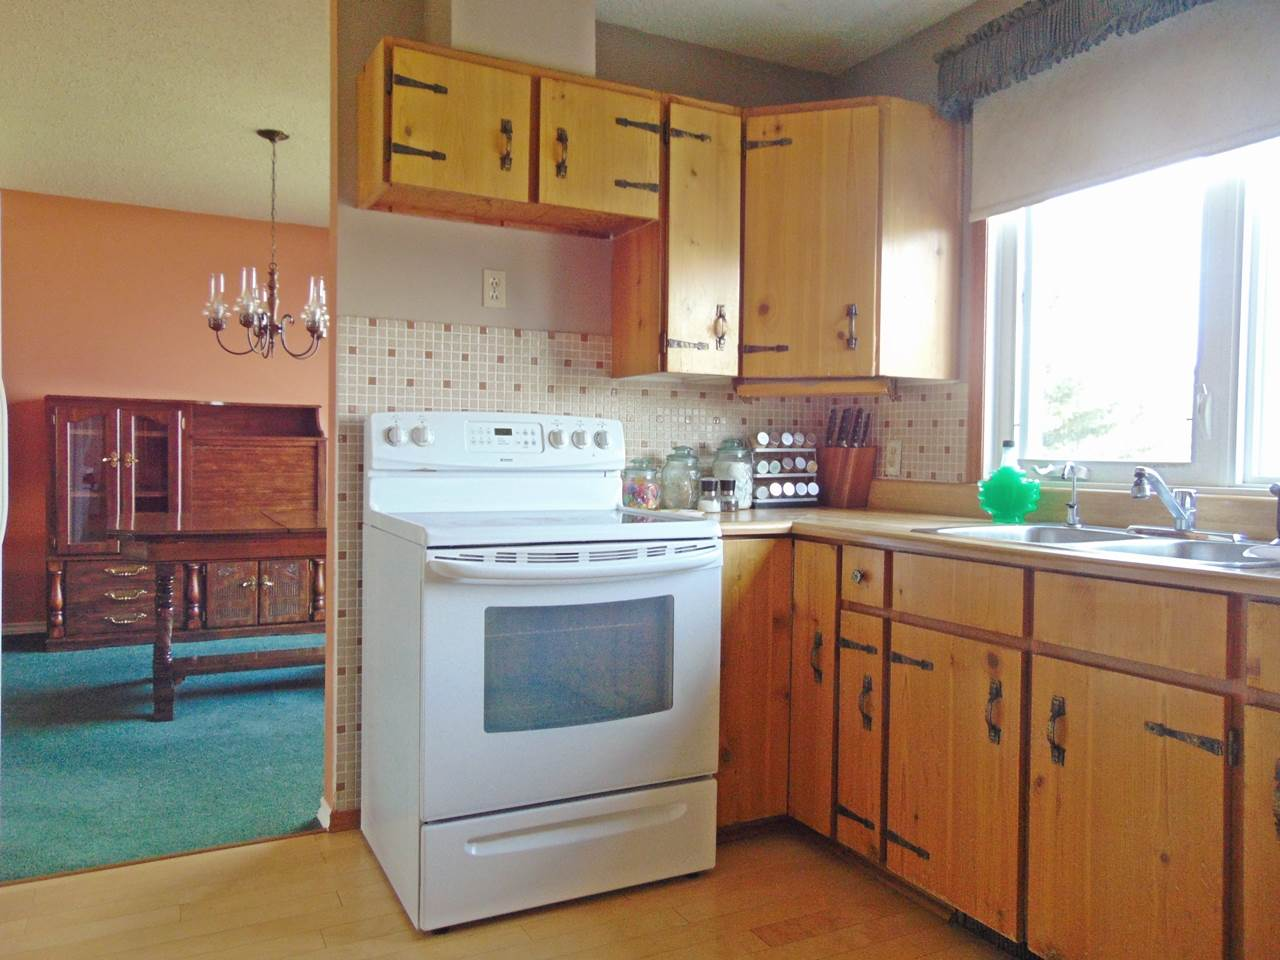 Photo 11: 57130 Rg Rd 230: Rural Sturgeon County House for sale : MLS(r) # E4064722